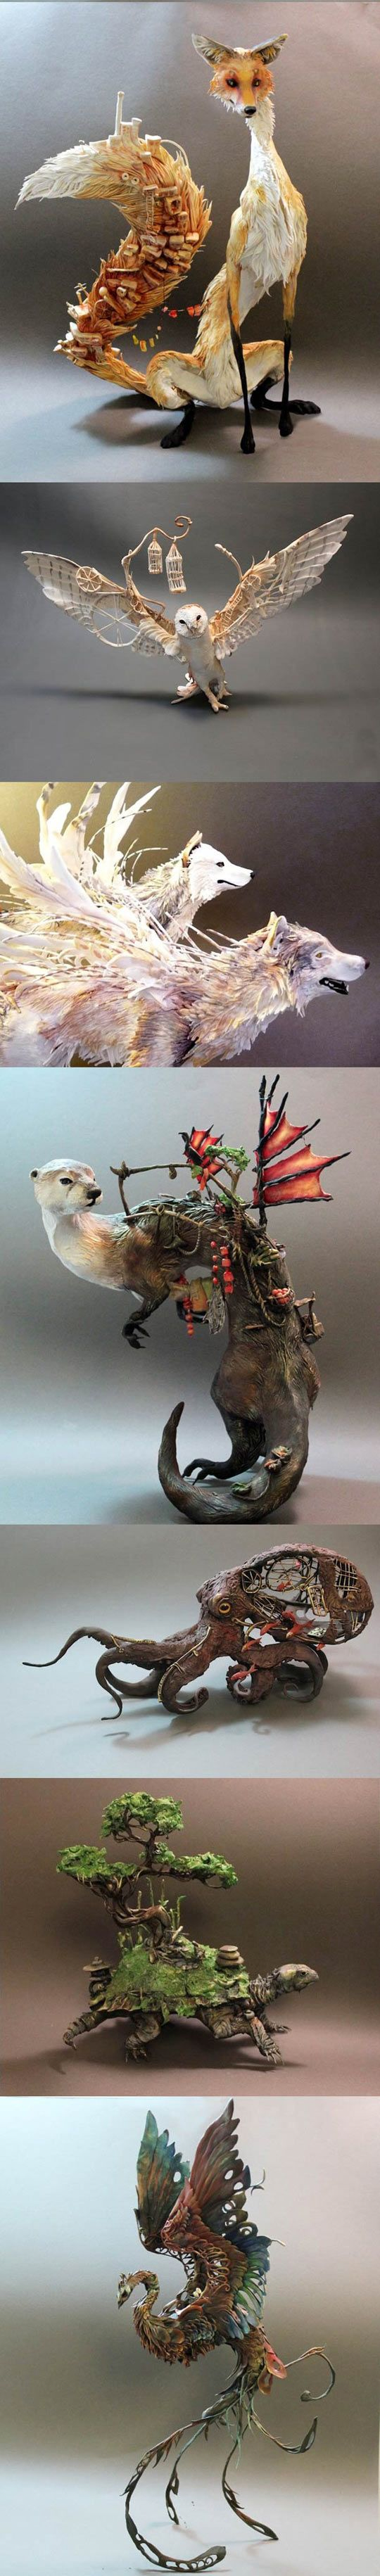 Amazing Animal Sculptures